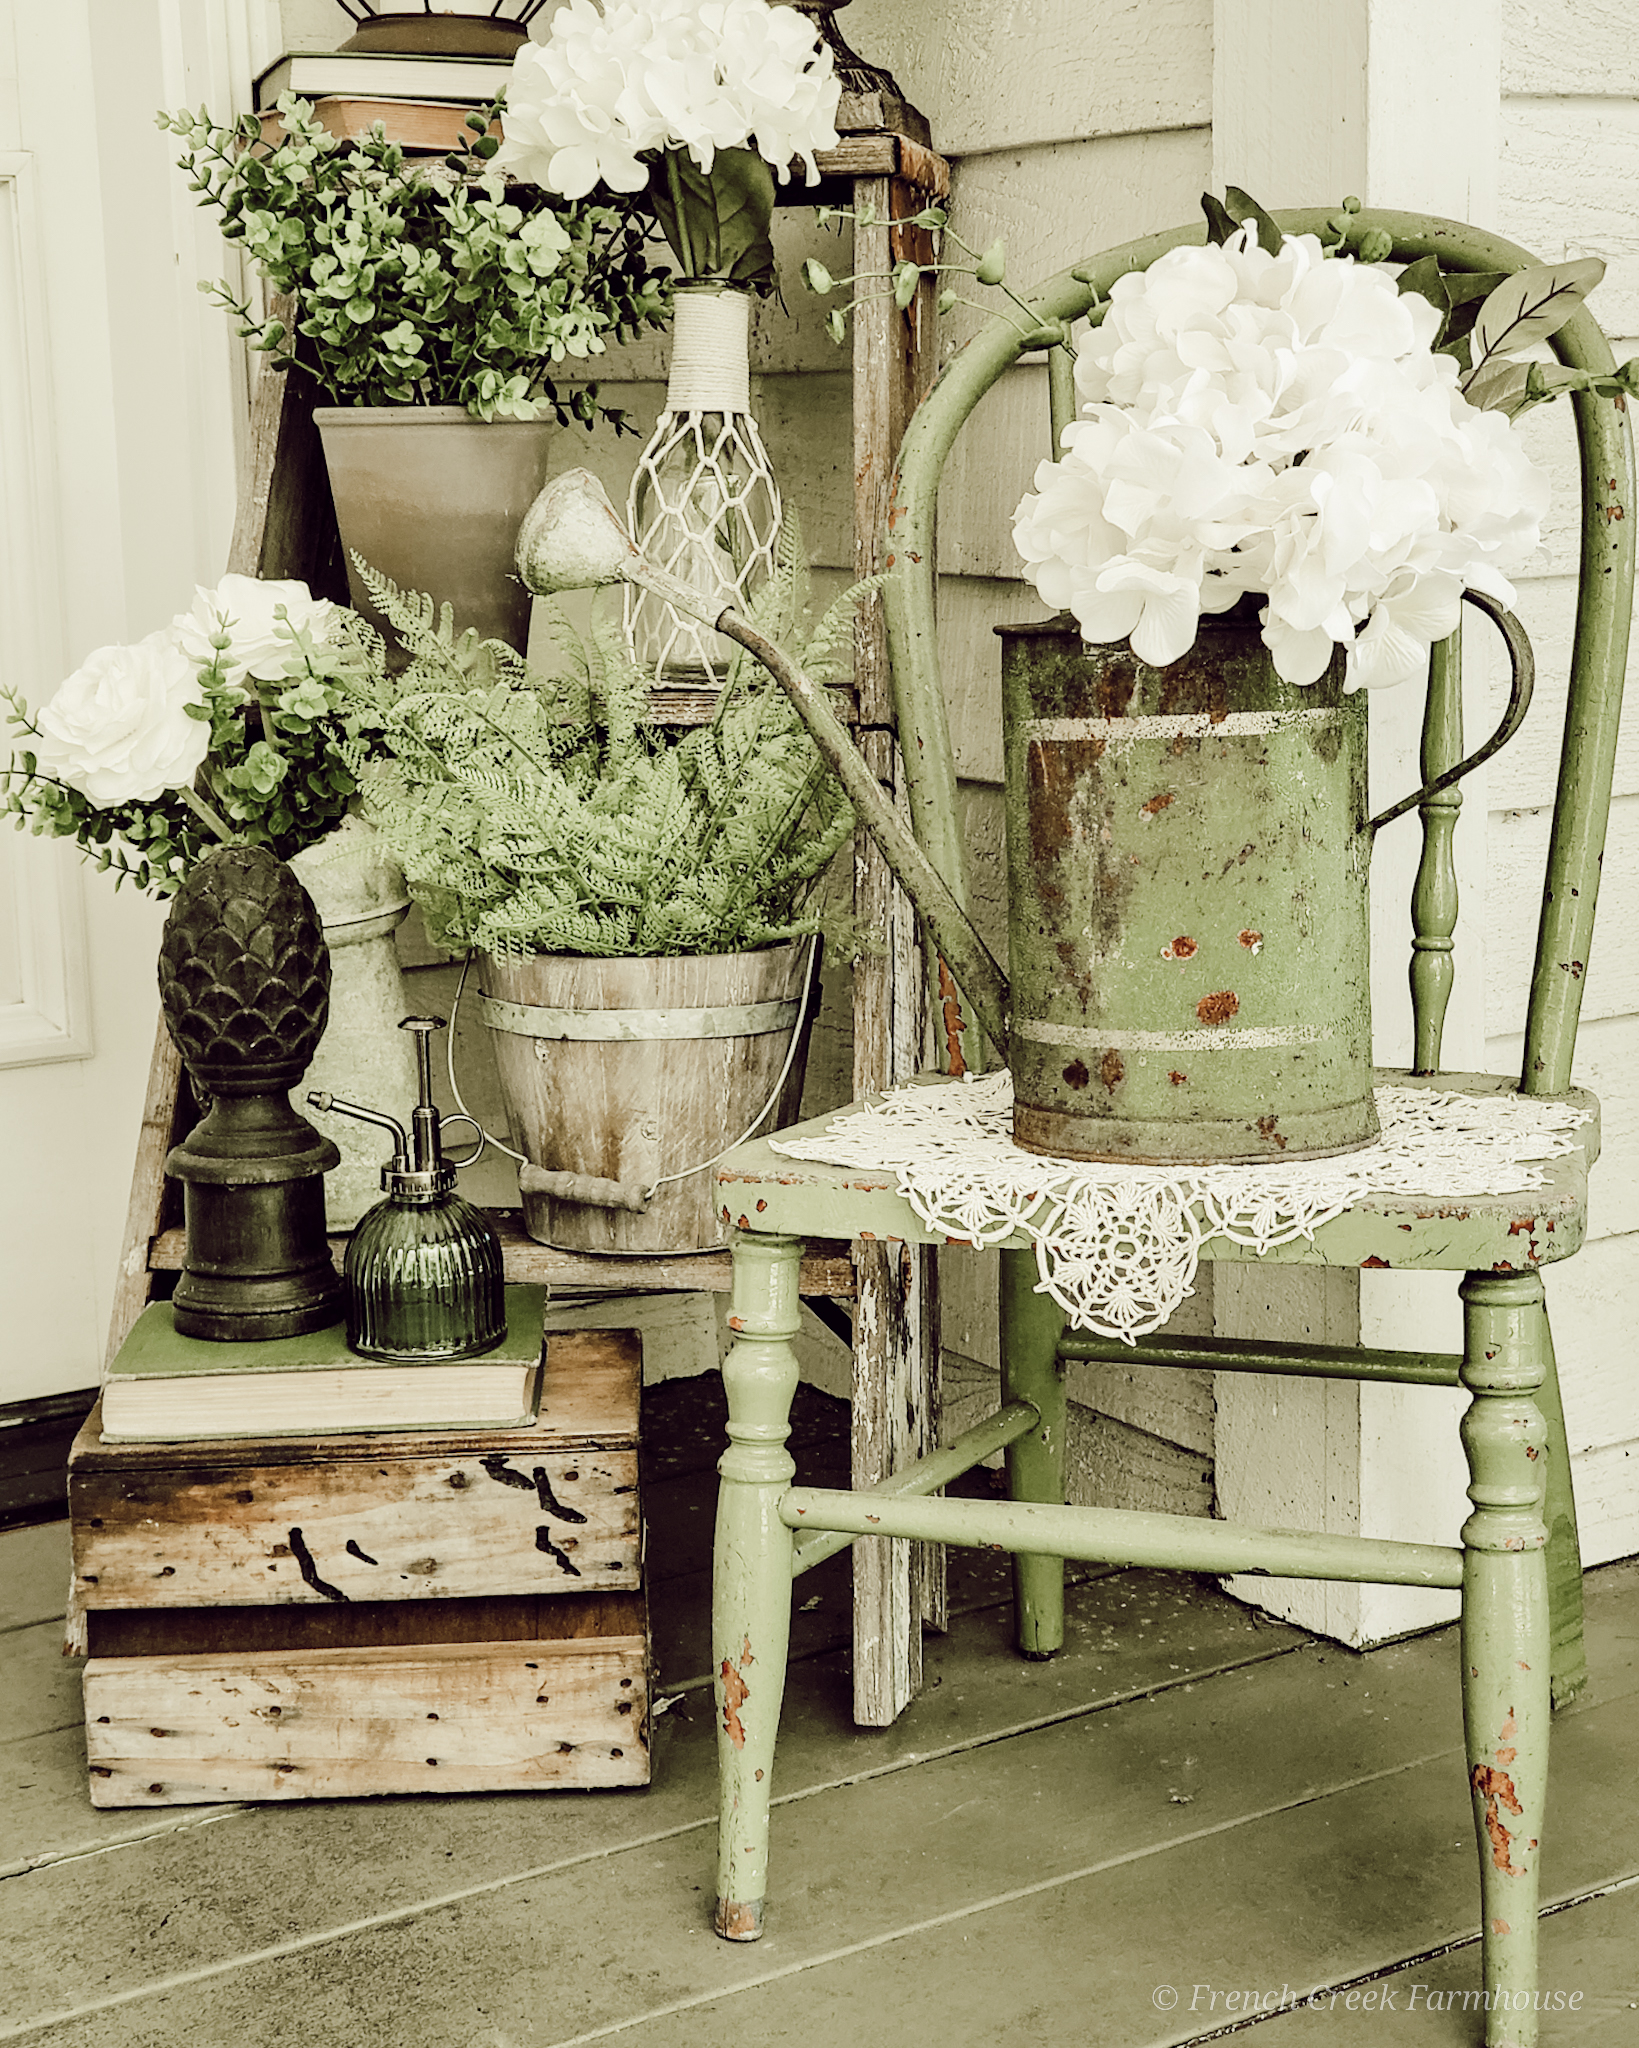 This springtime front porch vignette features a vintage watering can, chippy green chair, rustic old stepladder, and loads of spring florals